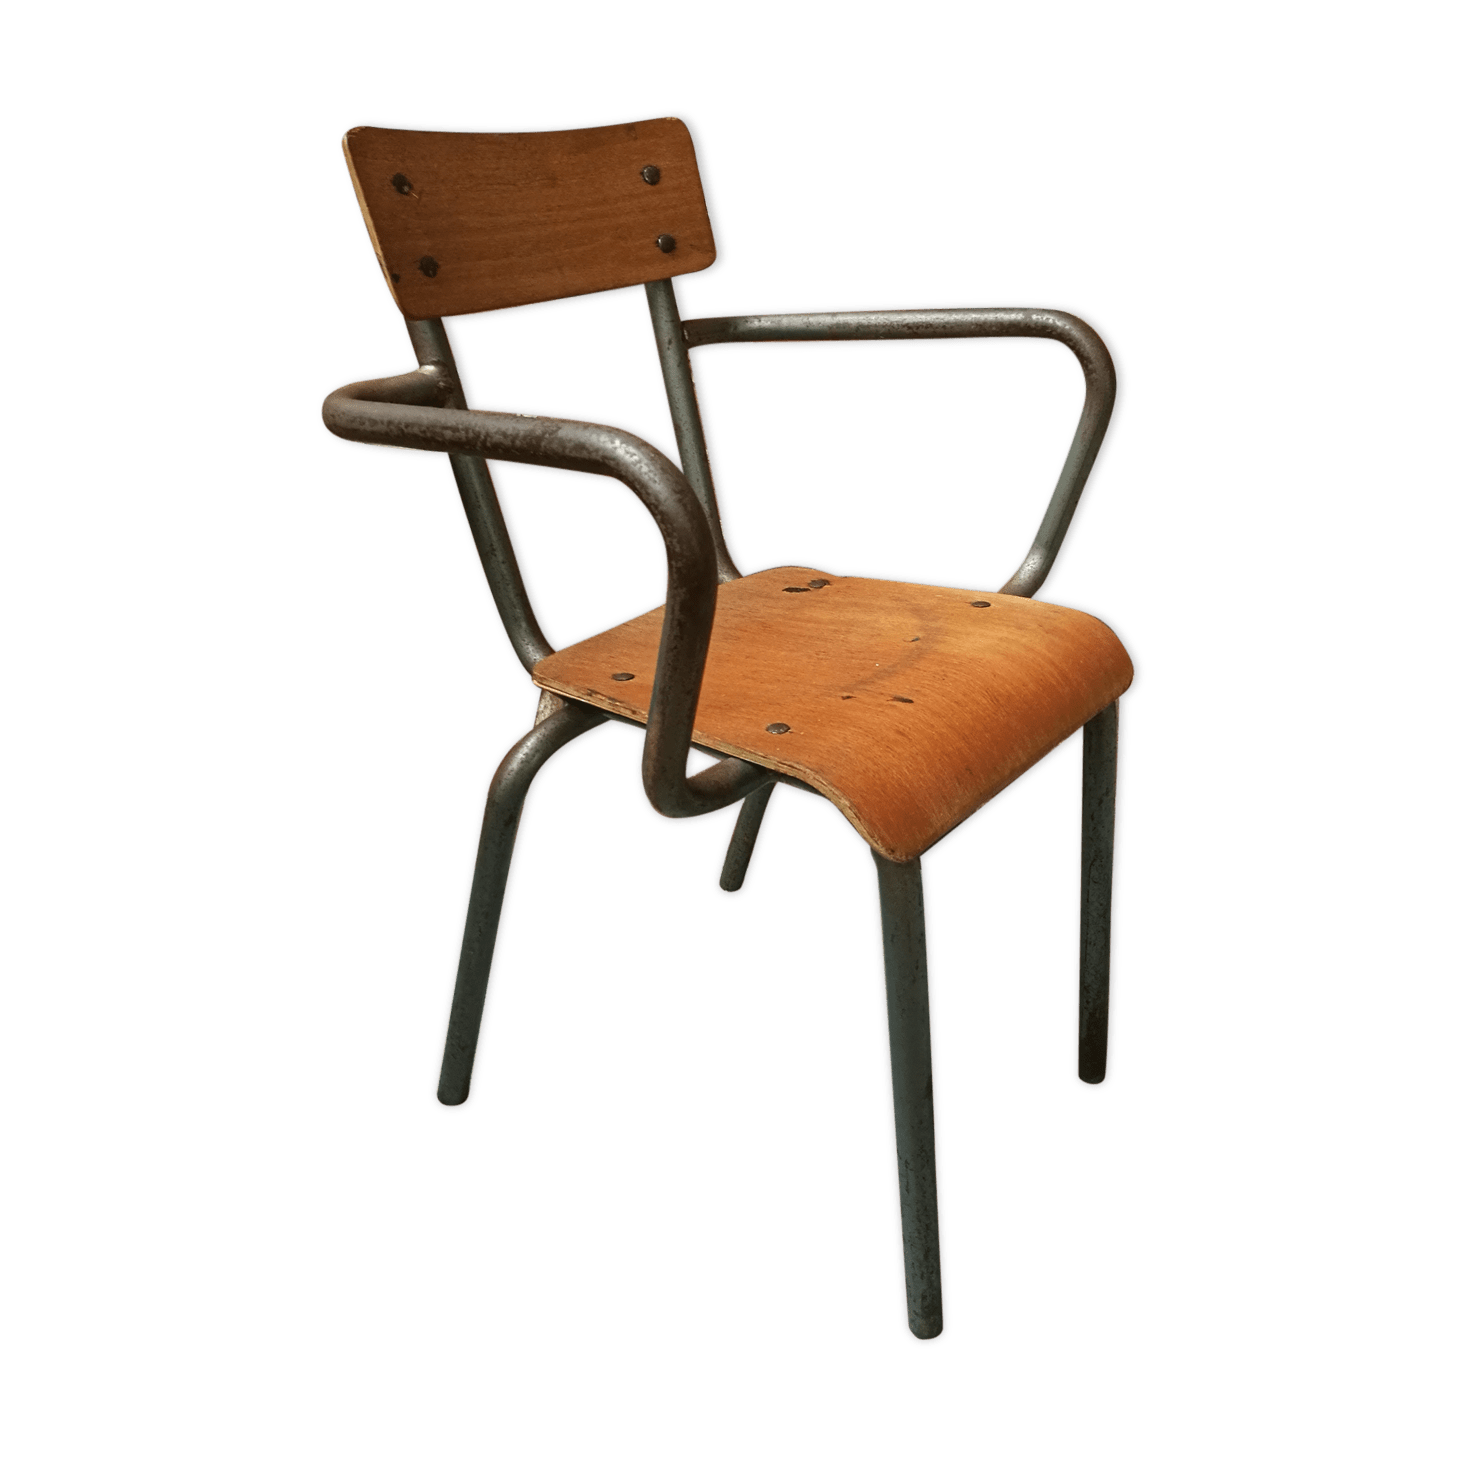 Chaise Bois Ancienne Chaise Ancienne Chaise Ancienne With Chaise Ancienne